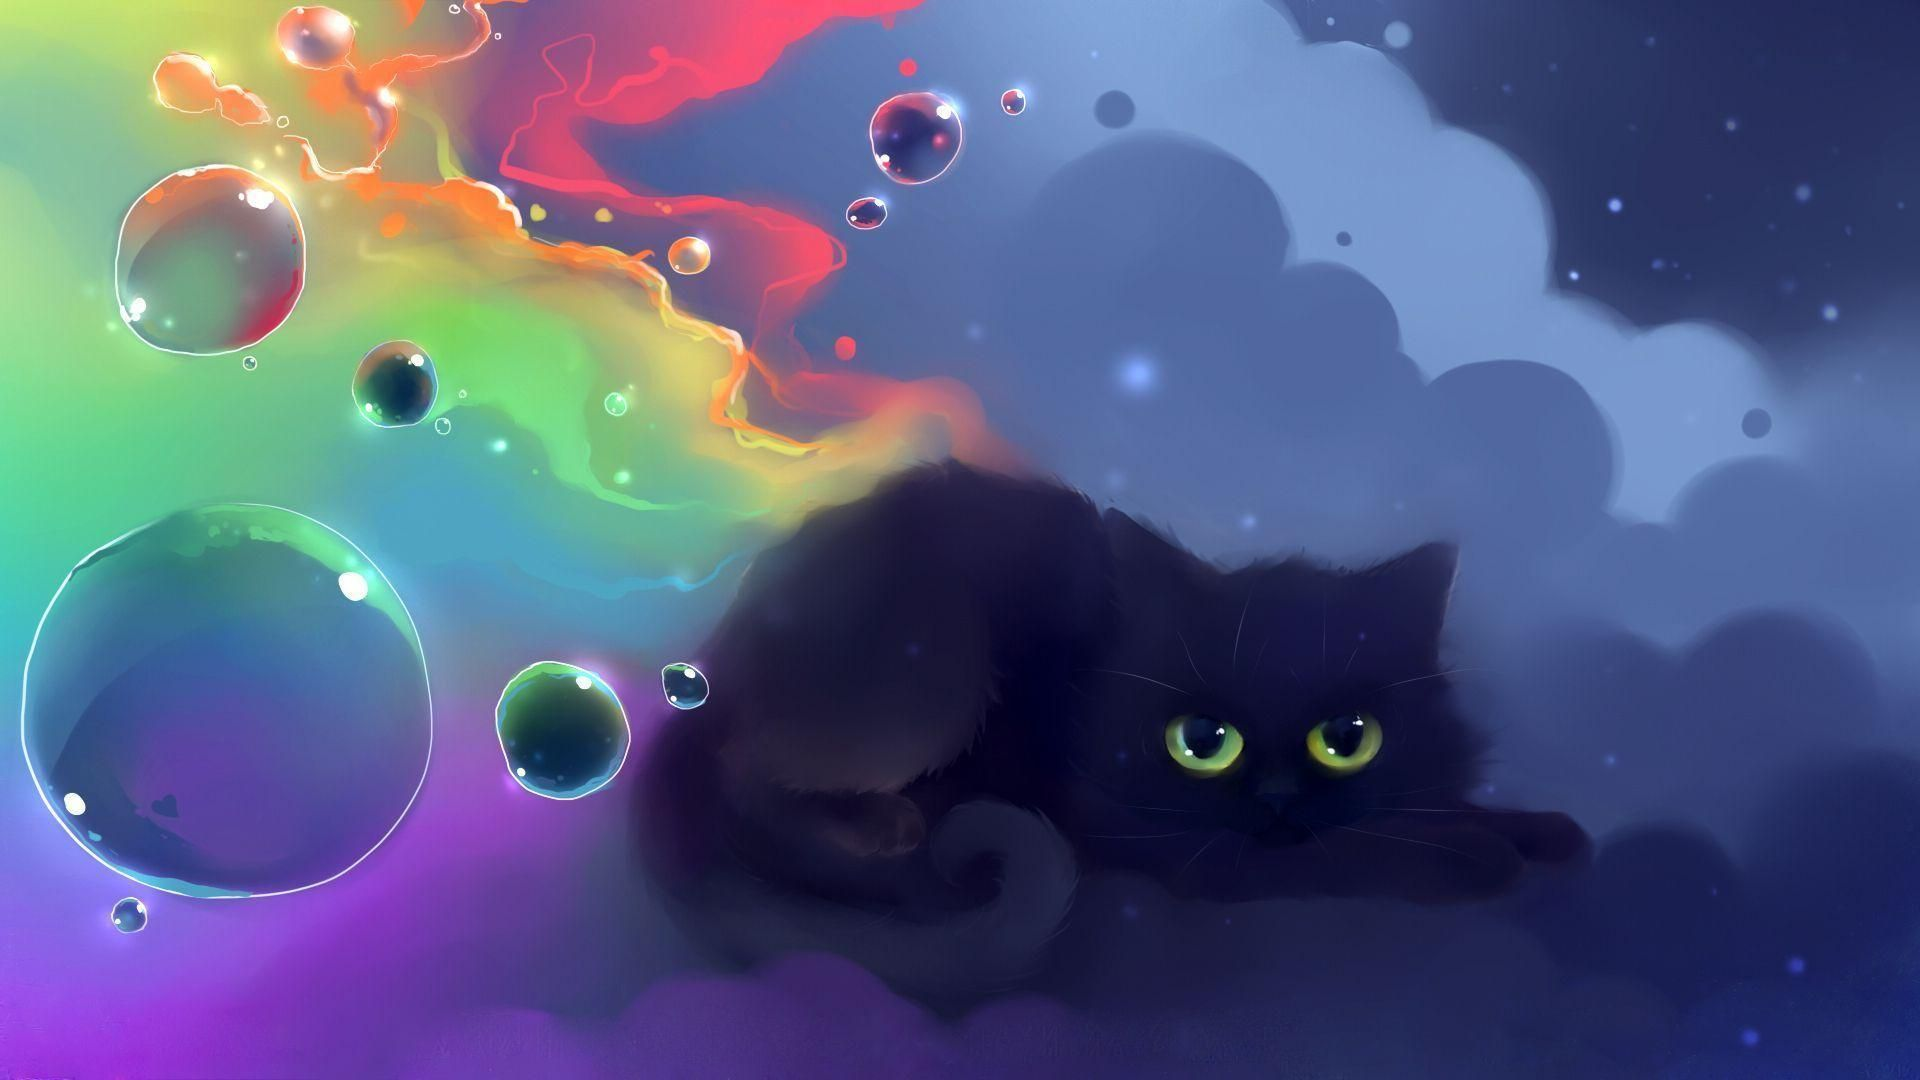 35 Cat Wallpaper For Halloween 2020 High Quality Resolution Cat Wallpaper Cute Anime Cat Cat Background